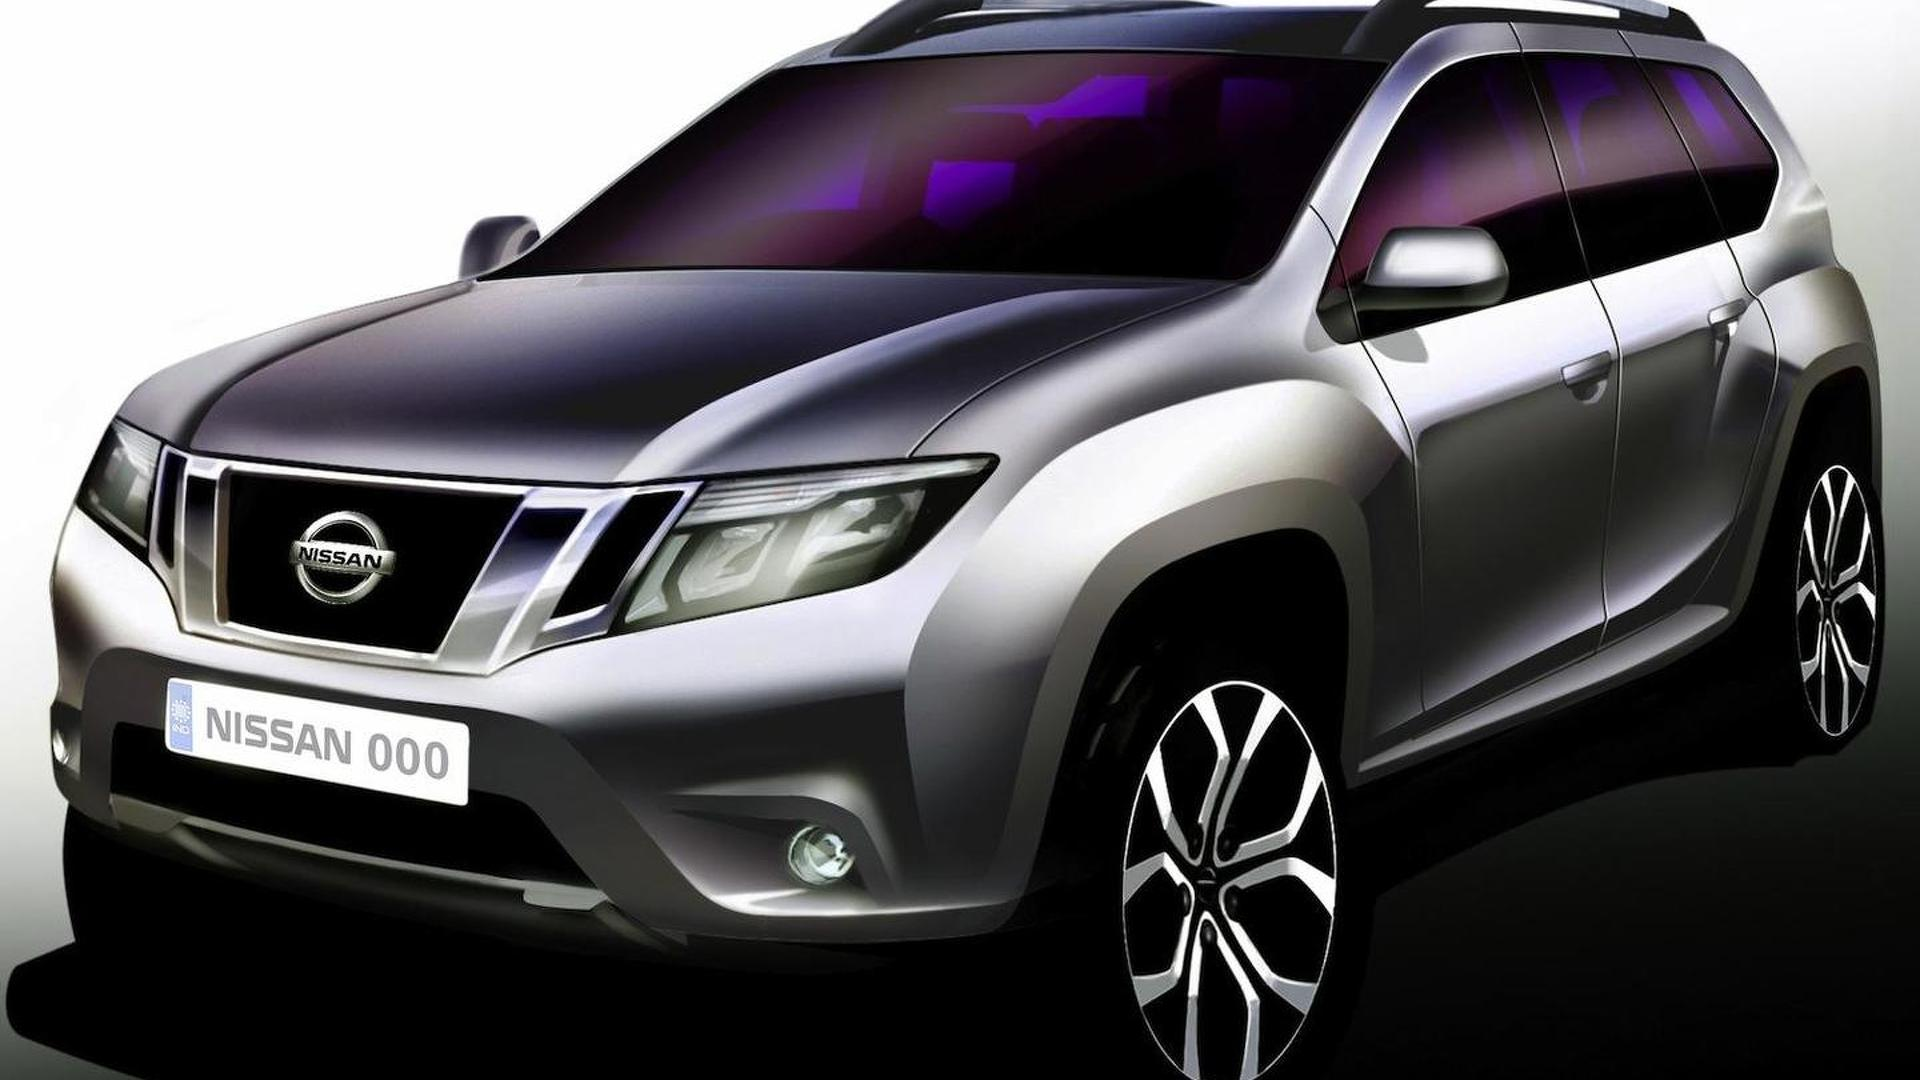 2013 Nissan Terrano confirmed for August 20 debut